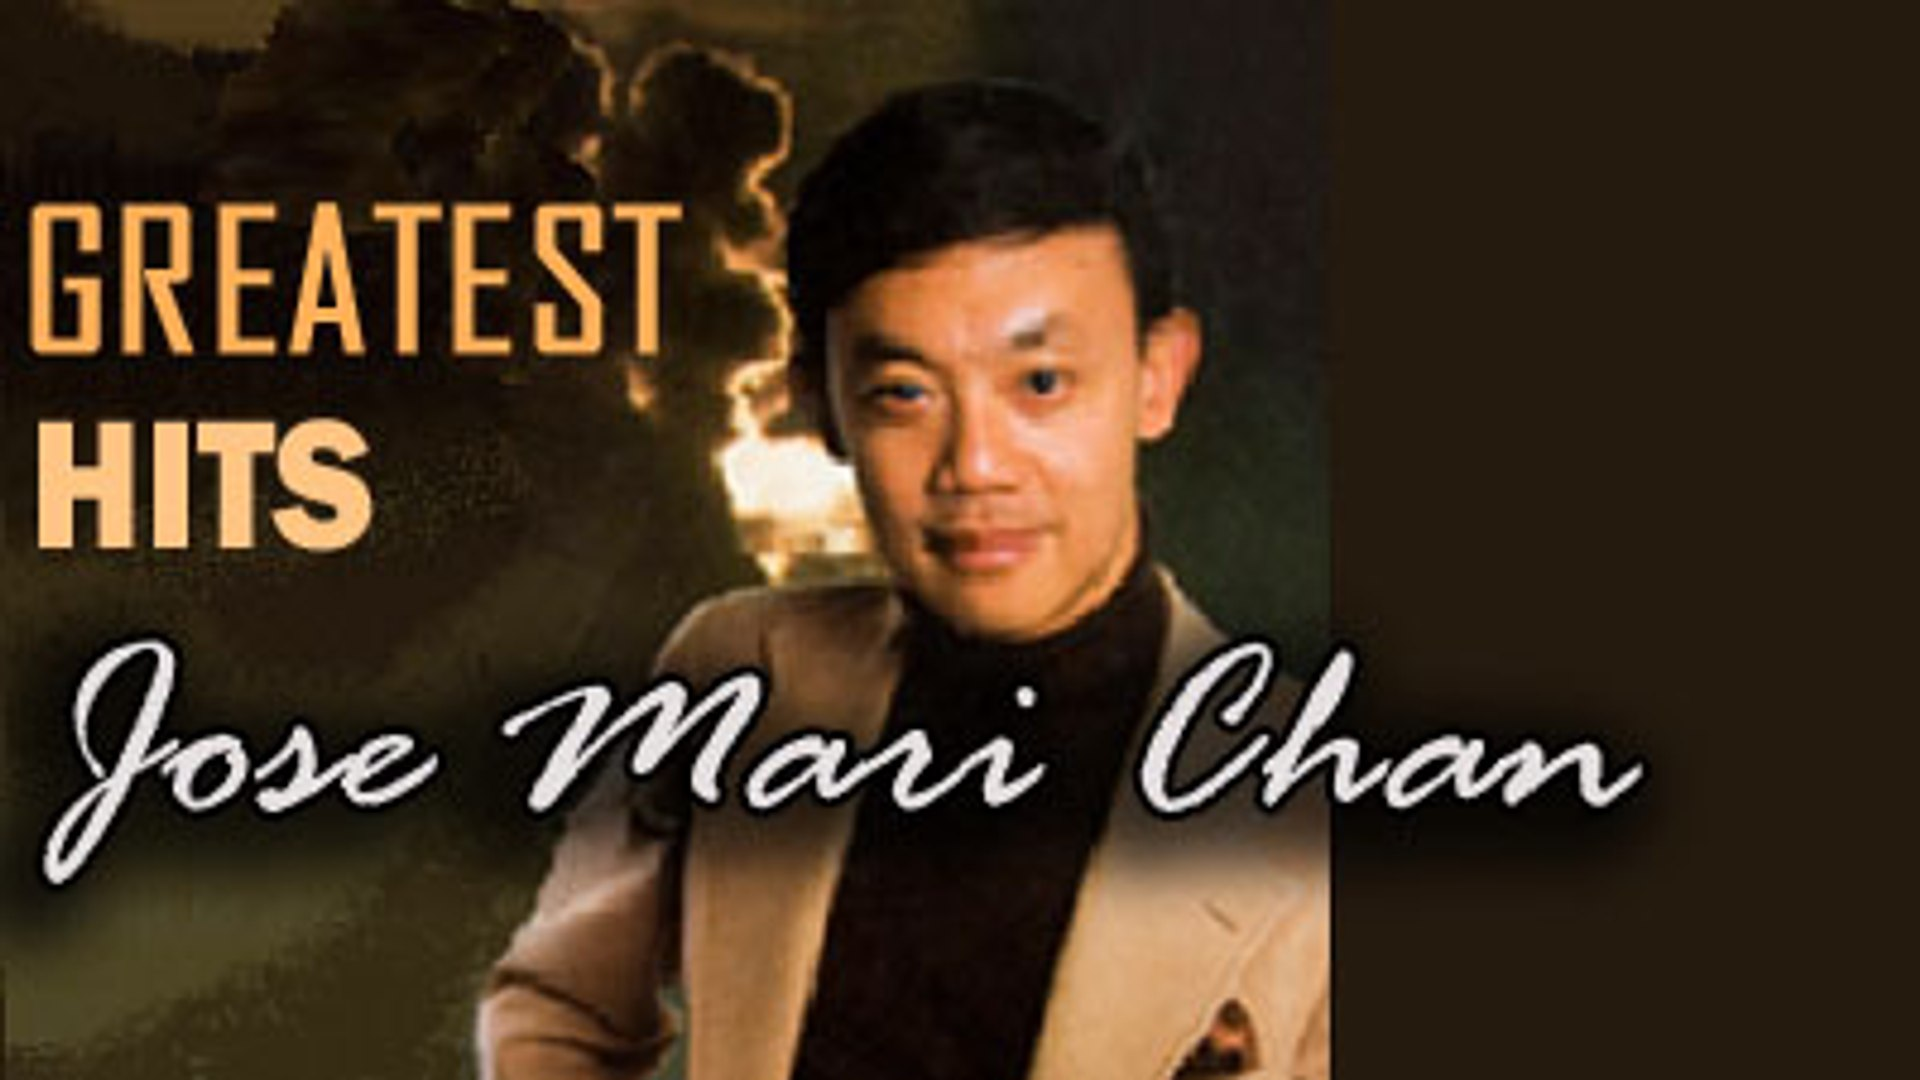 Jose mari chan christmas in our hearts (official album preview.